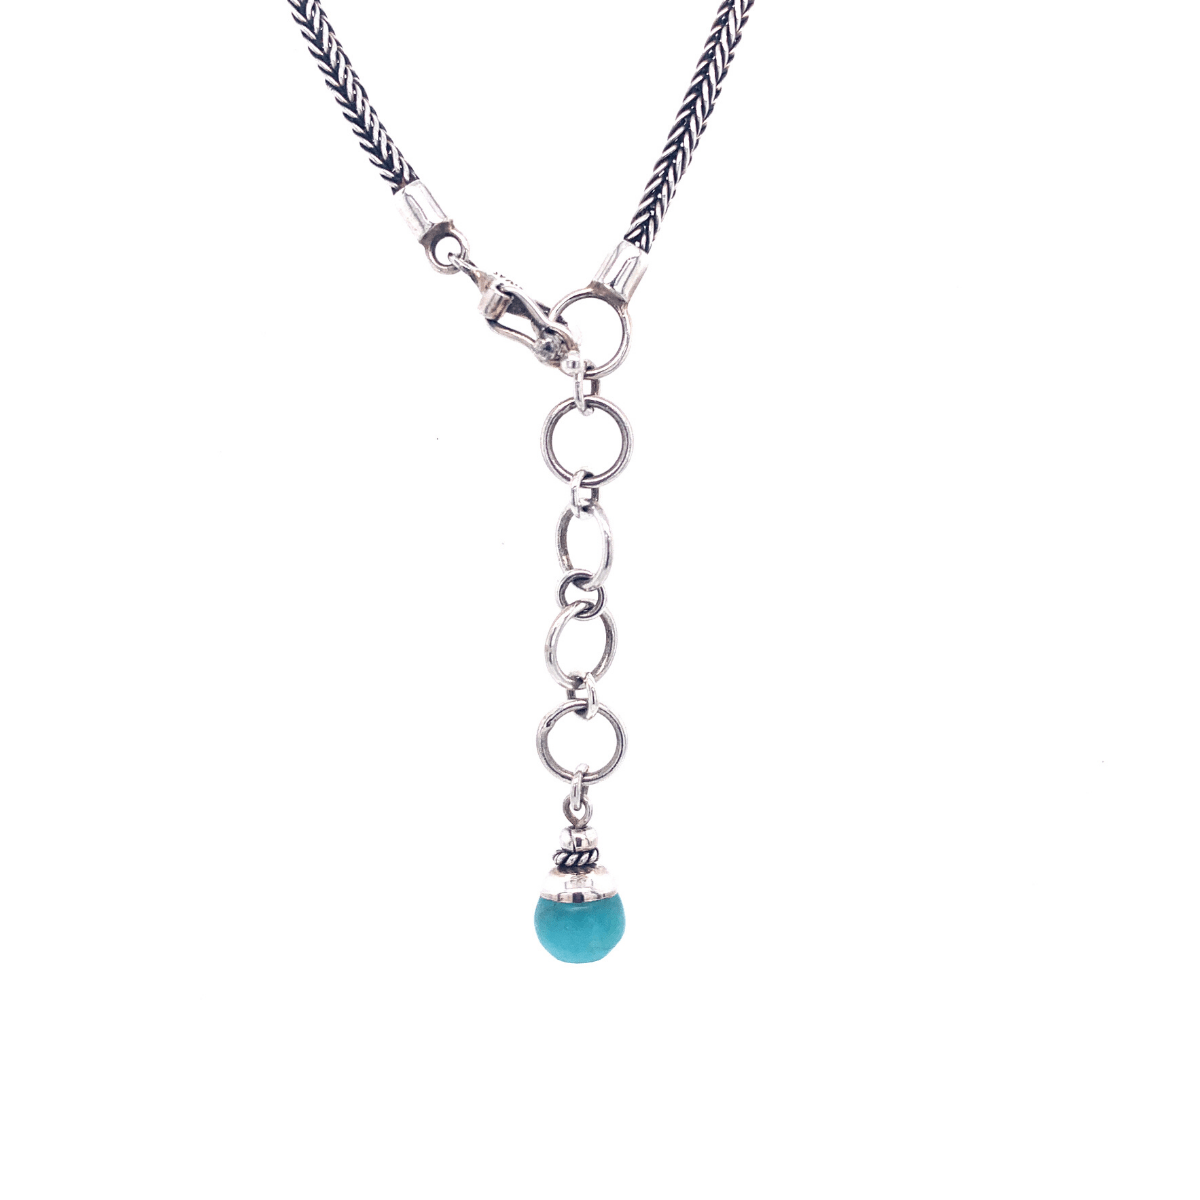 Amazonite Balls & Sterling Silver Necklace - Qinti - The Peruvian Shop